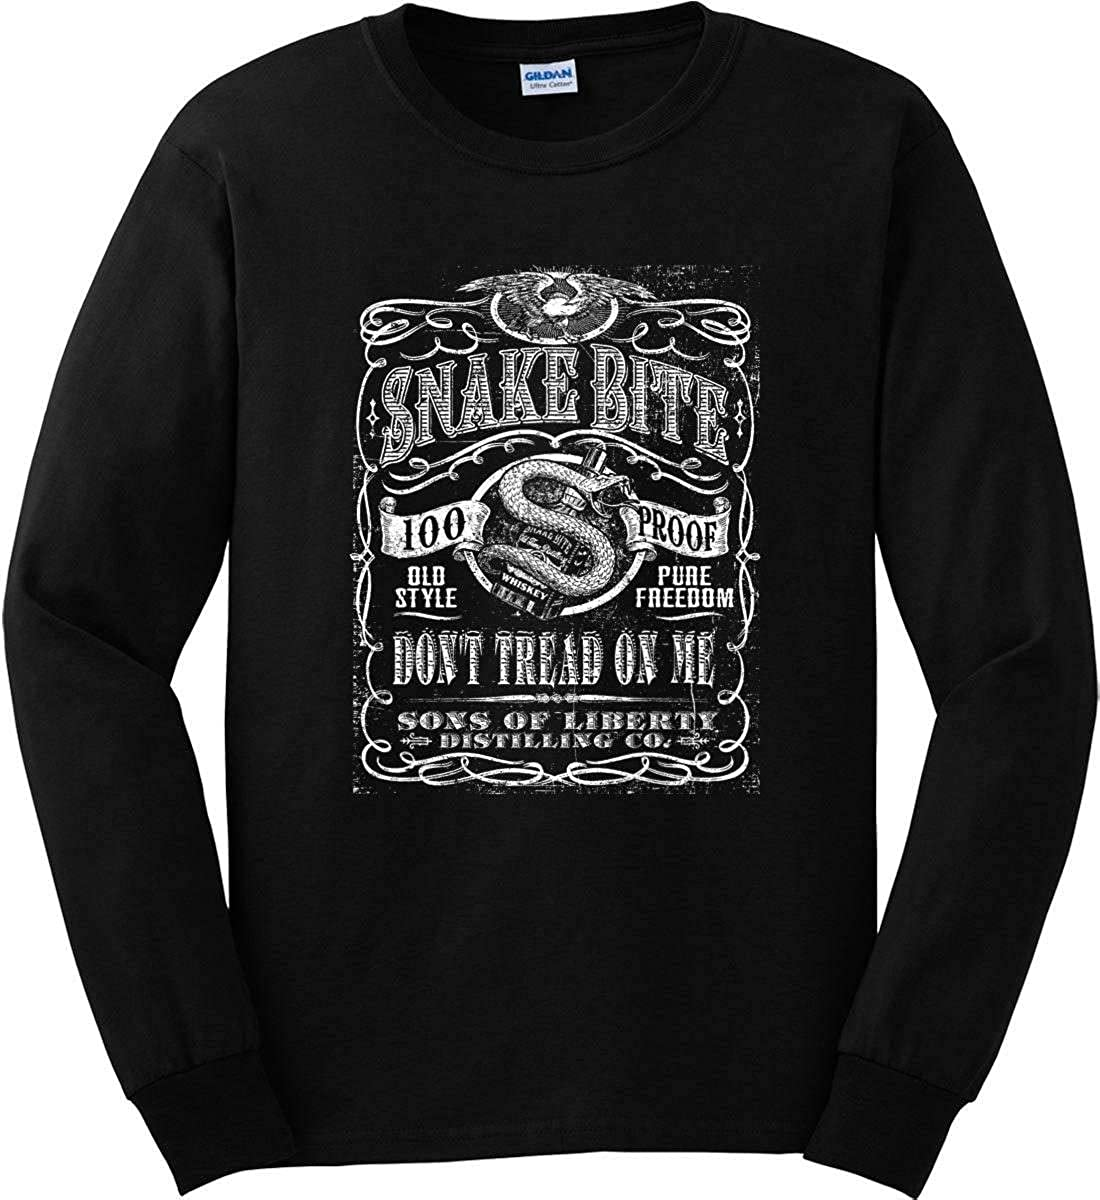 Long Sleeve Shirt Sons Of Liberty Snake Bite Dont Tread on Me Distilling Co